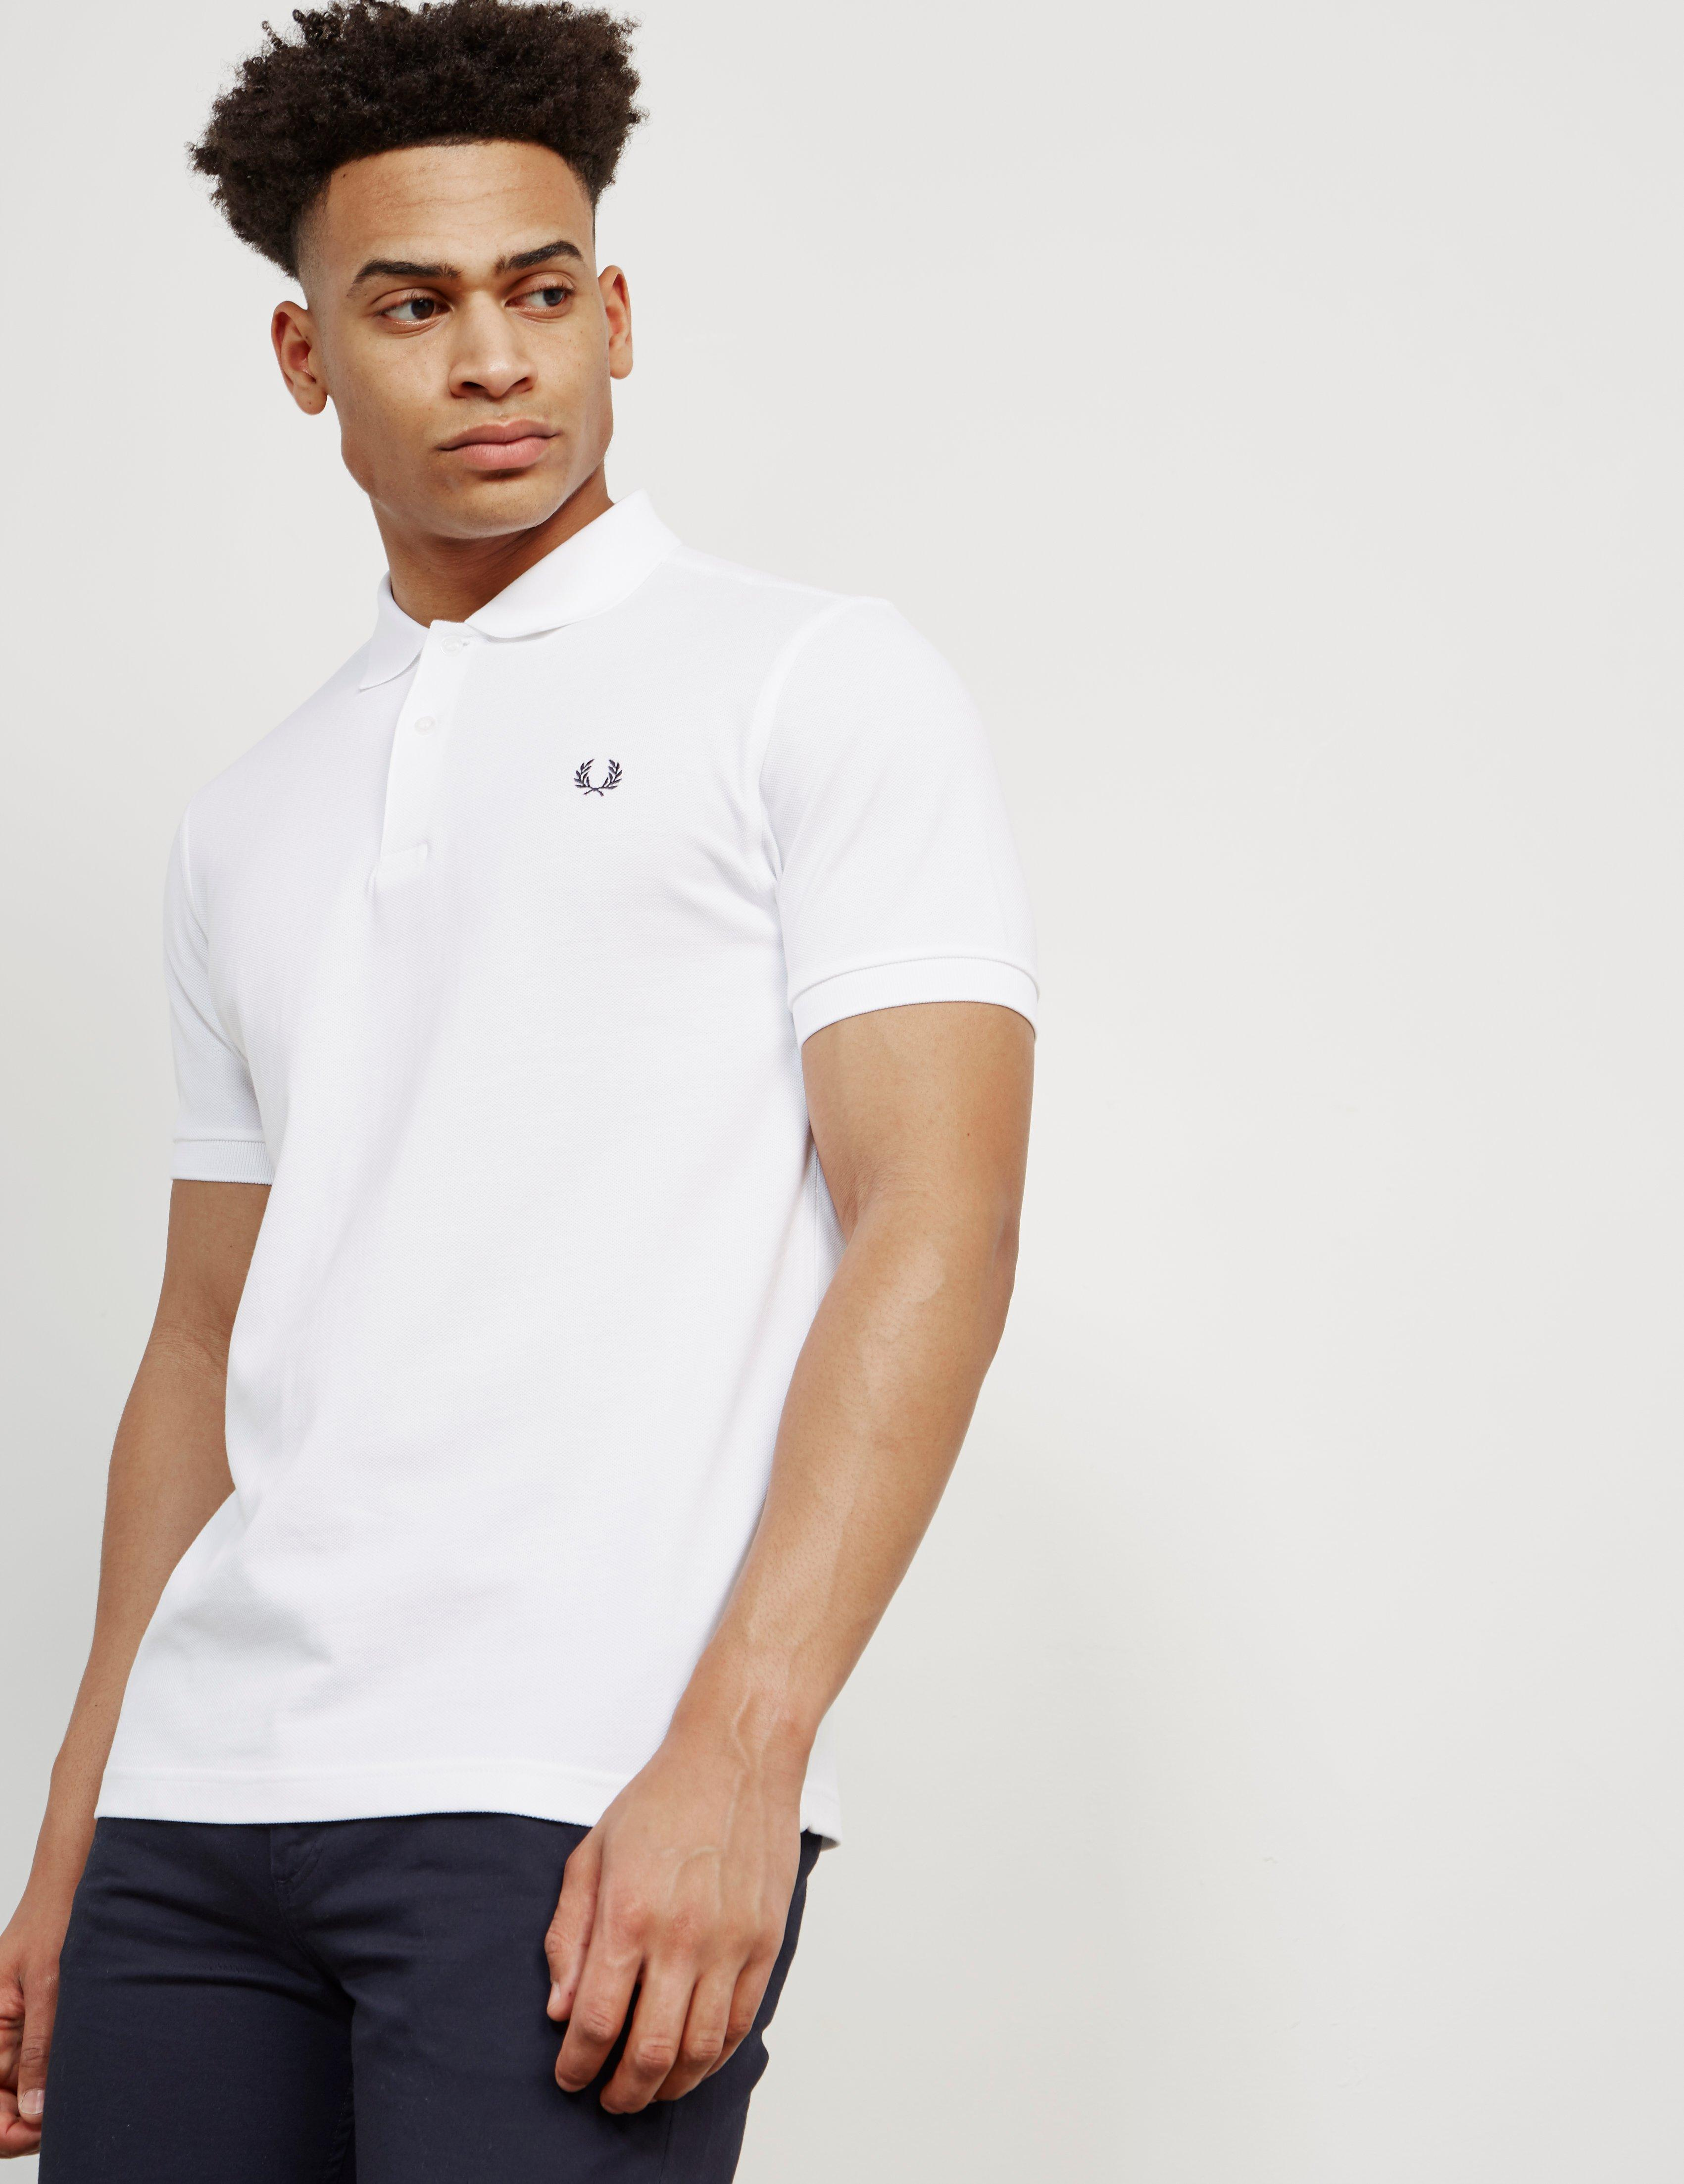 a21716099 Lyst - Fred Perry Mens M6000 Short Sleeve Polo Shirt White in White ...